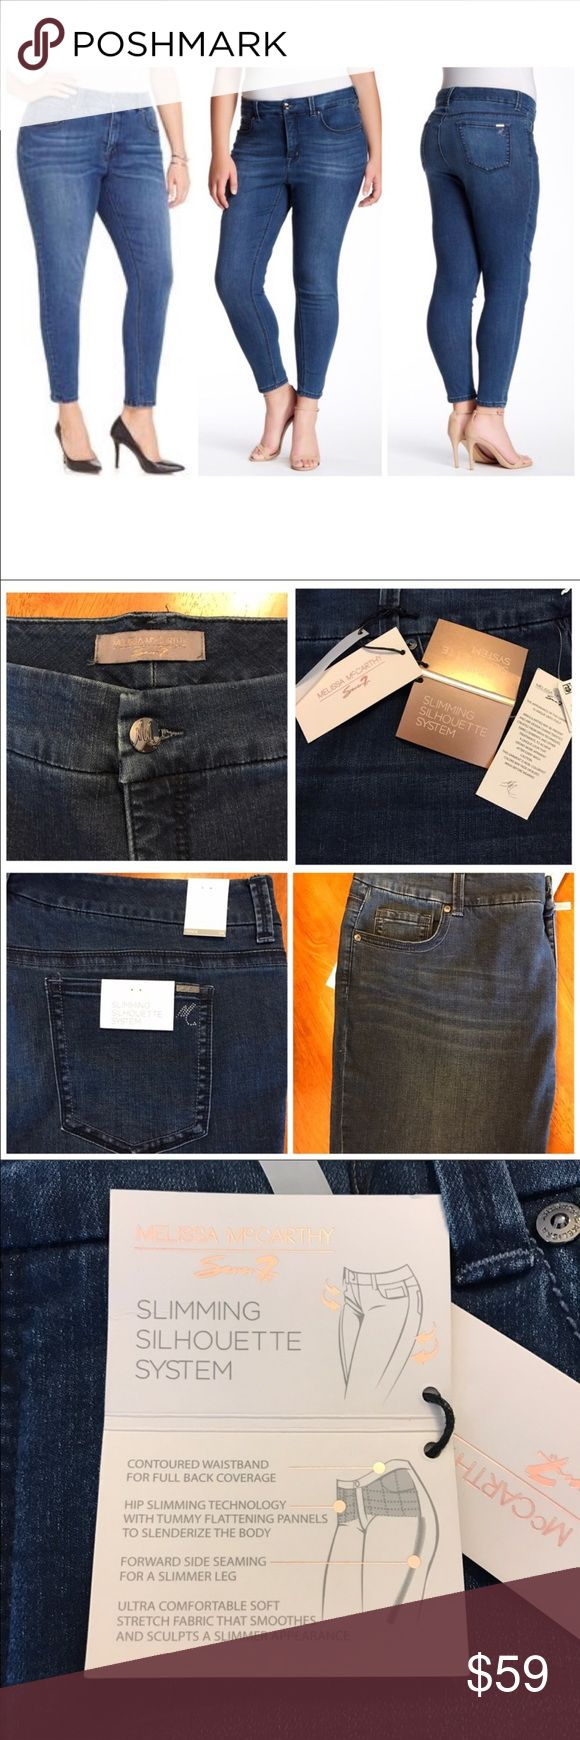 """PLUS SIZE Melissa McCarthy Stretch Skinny 👖 B77 - Zip fly with button closure - 5 pocket construction - Studded back pocket - Topstitch detail - Approx. 13.5"""" rise, 28"""" inseam - 71% cotton, 16% polyester, 12% rayon, 1% spandex Machine wash Fit: this style fits true to size. Melissa McCarthy Seven7 Stretch Skinny Jeans B77 Melissa McCarthy Jeans Skinny"""